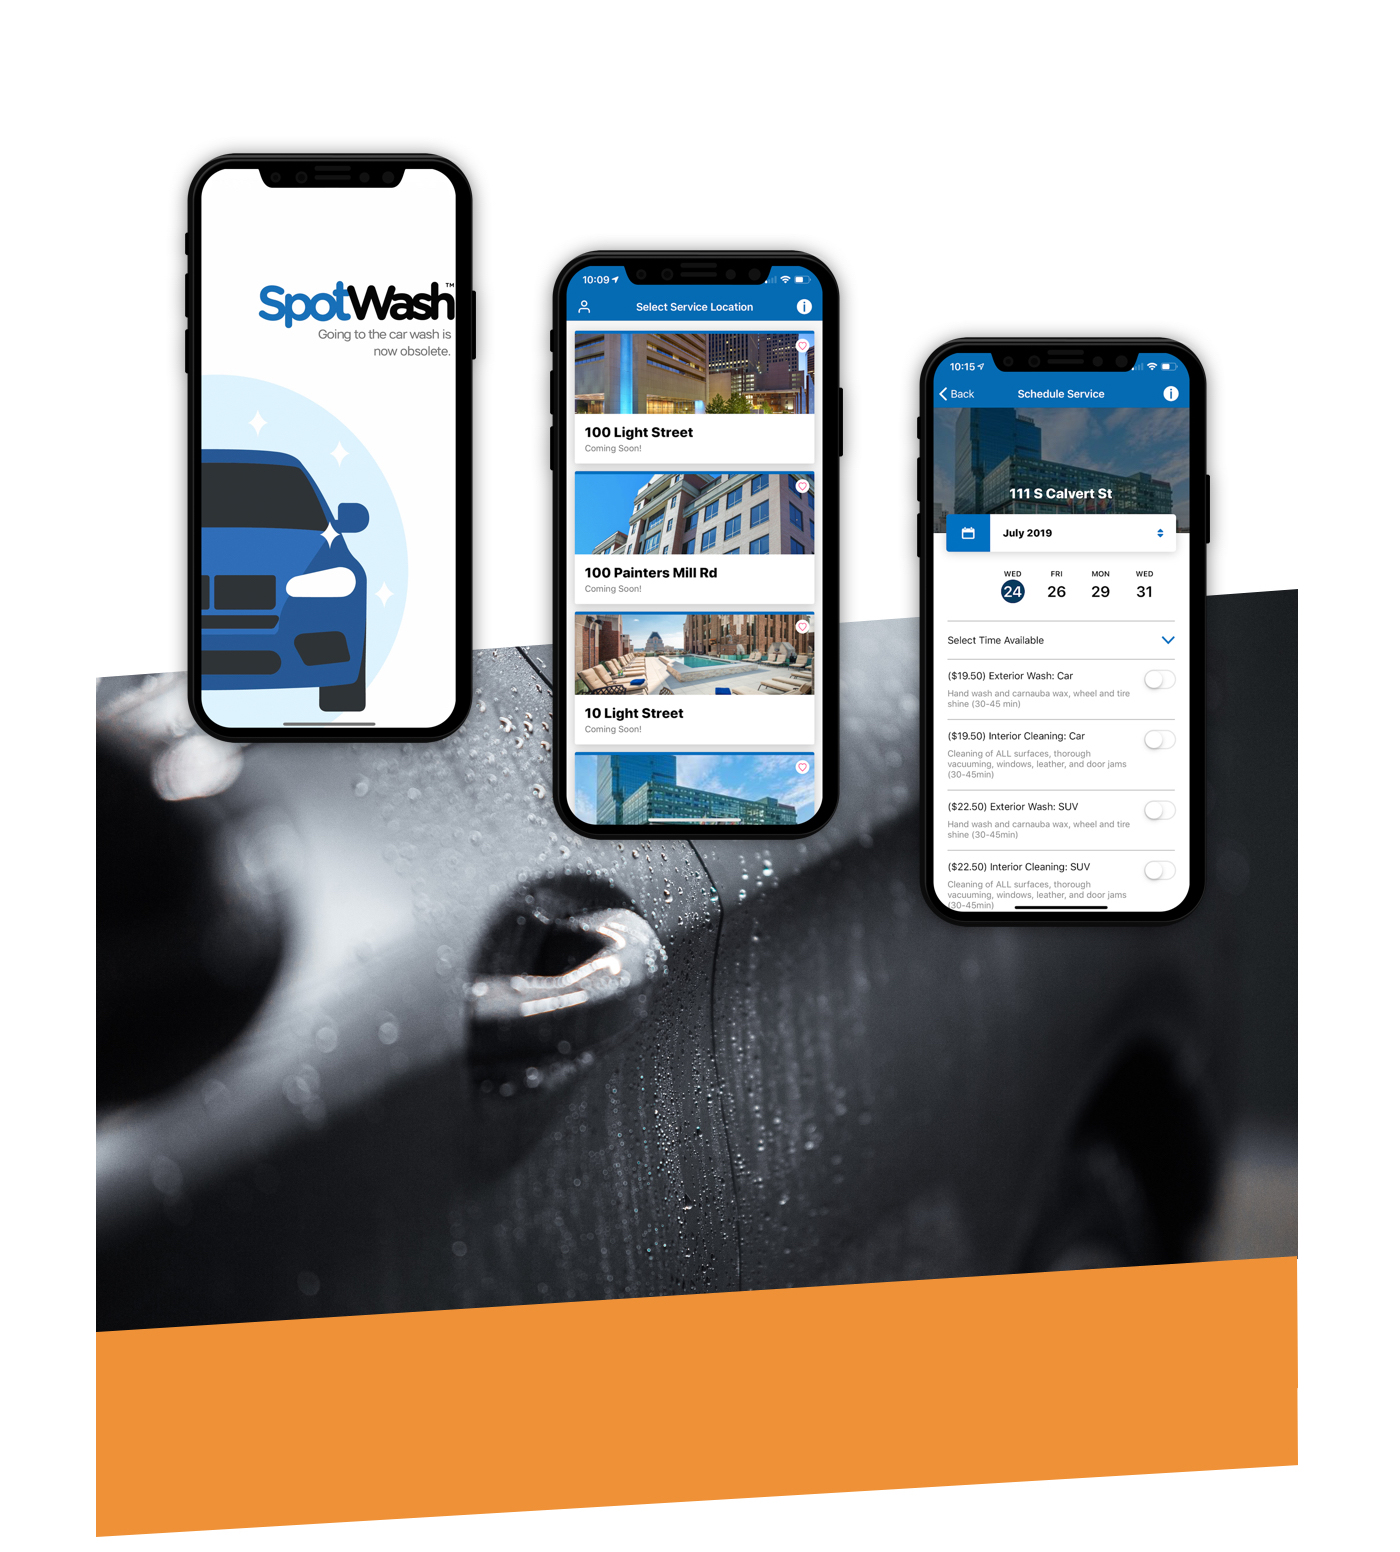 Three mobile devices displaying different screens of the SpotWash app